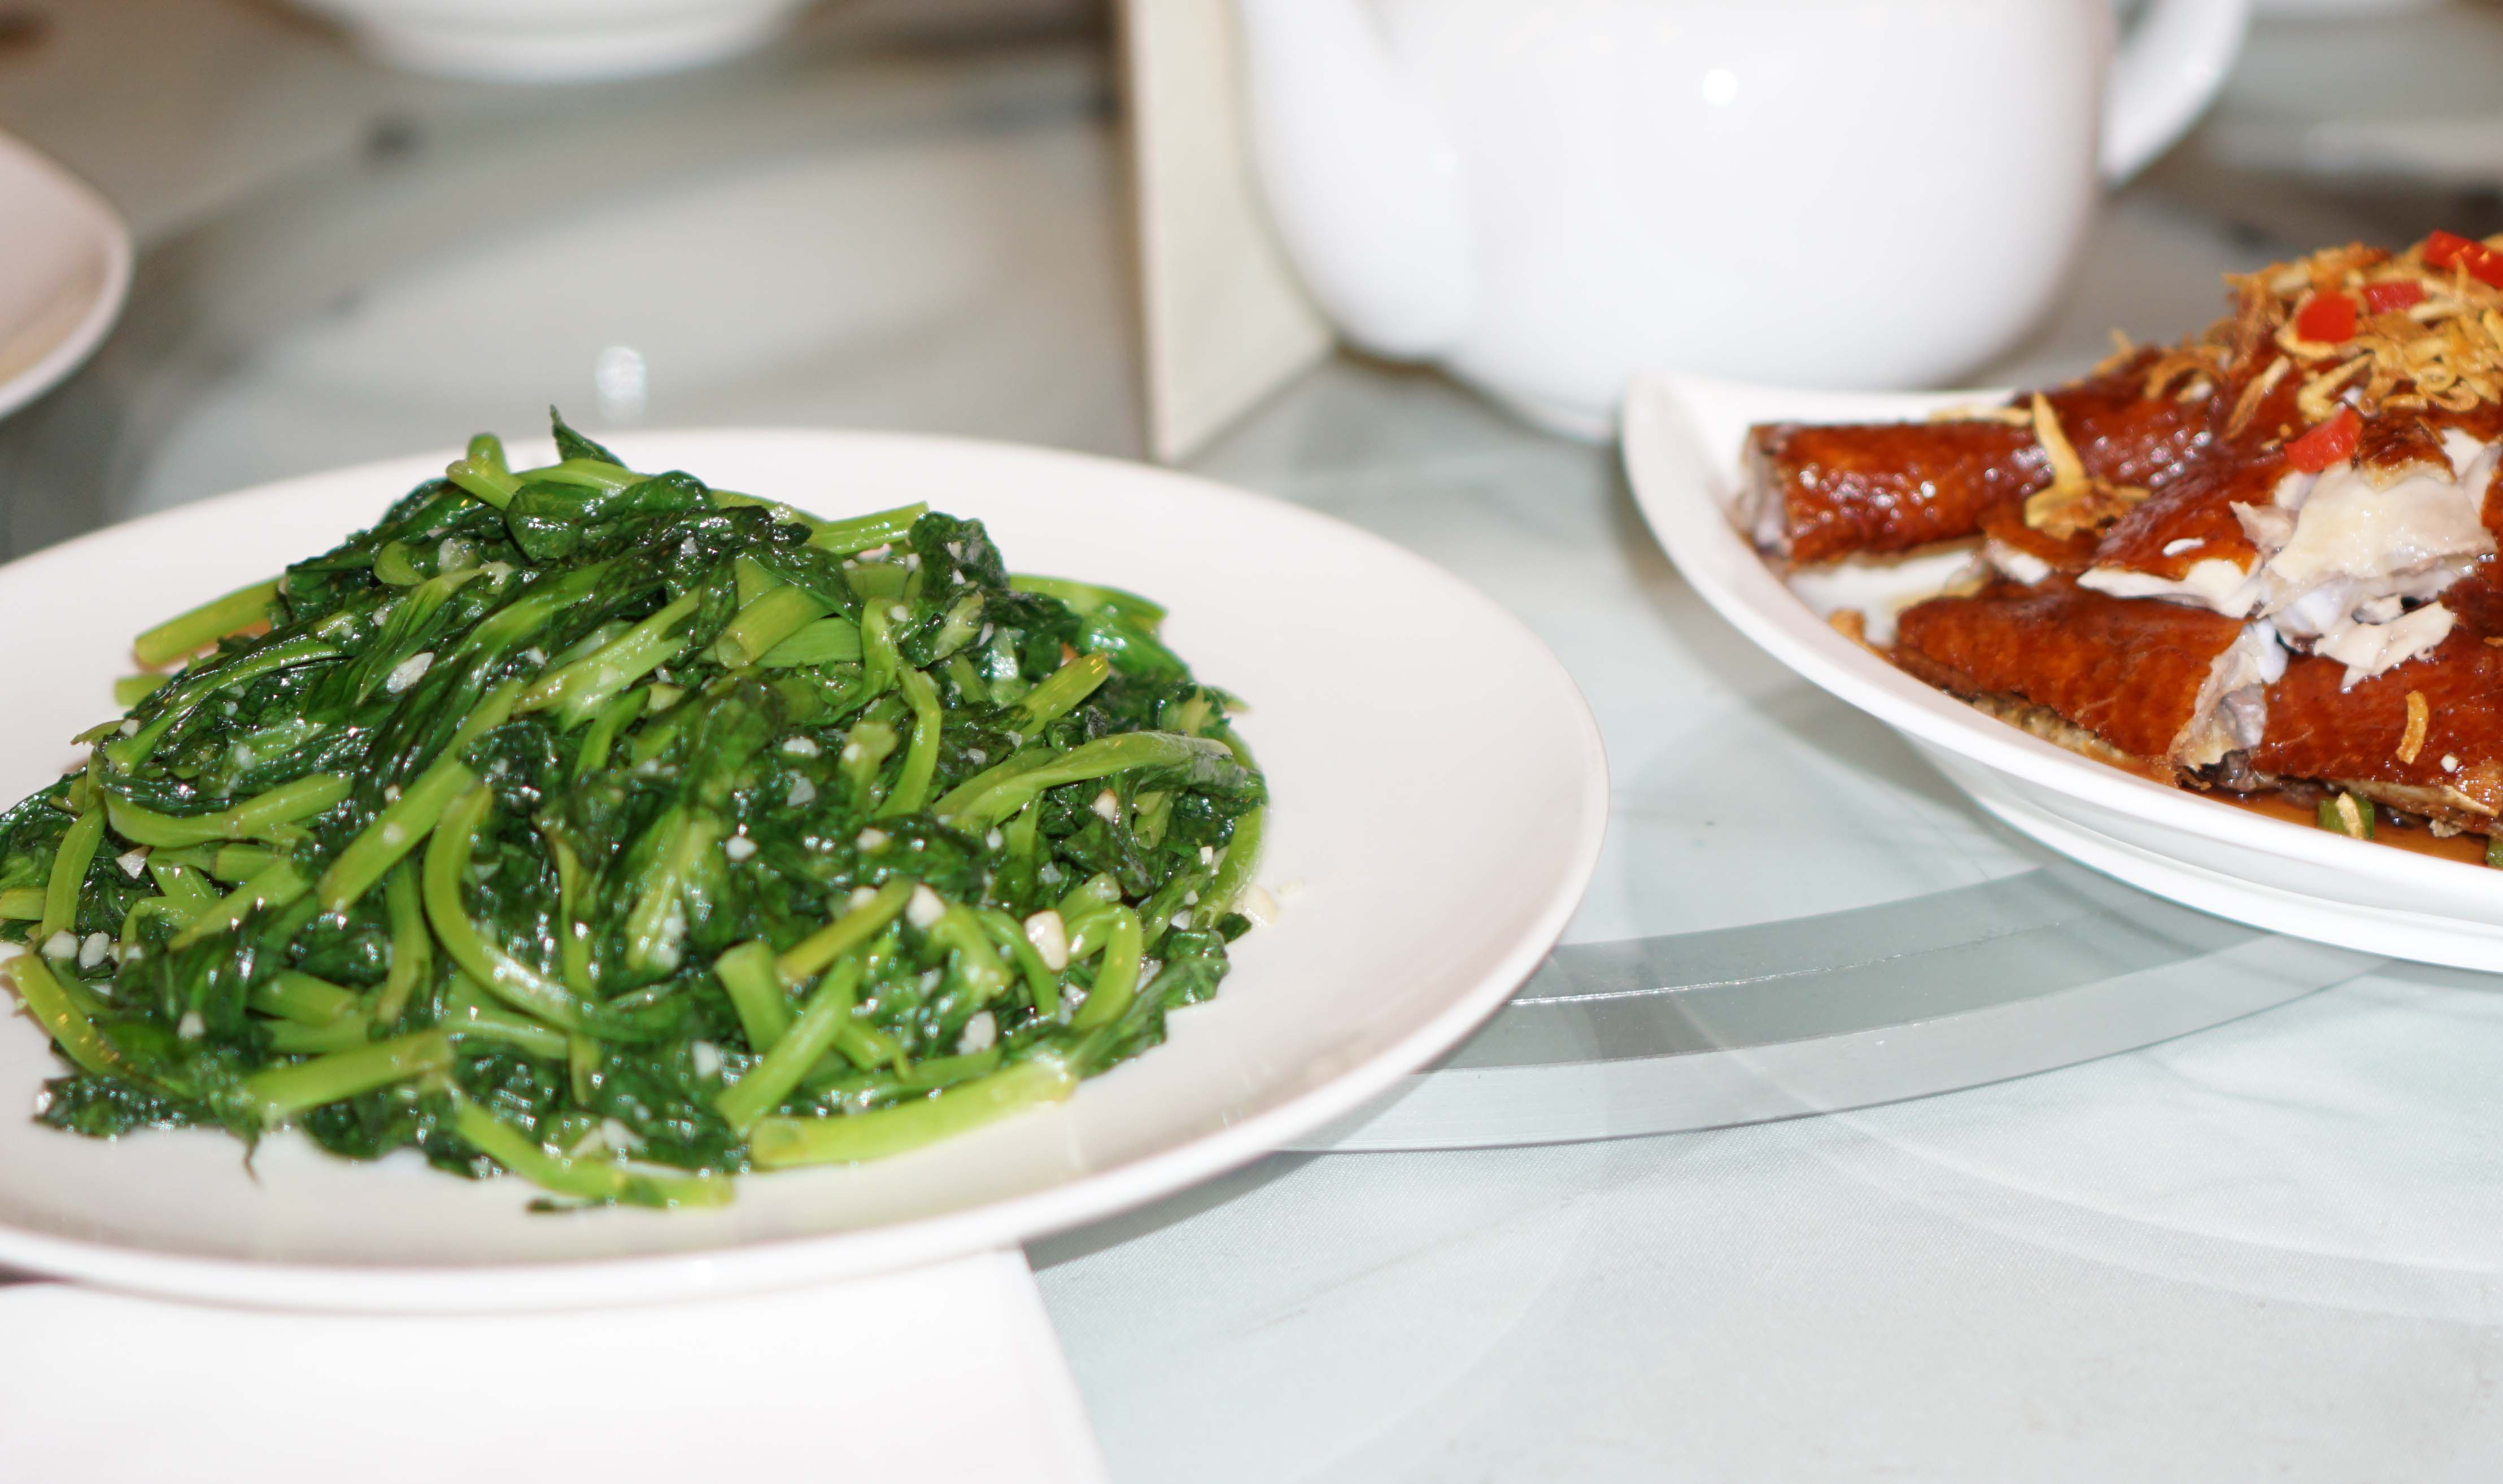 St George Sauteed Snow pea leaves with minced garlic